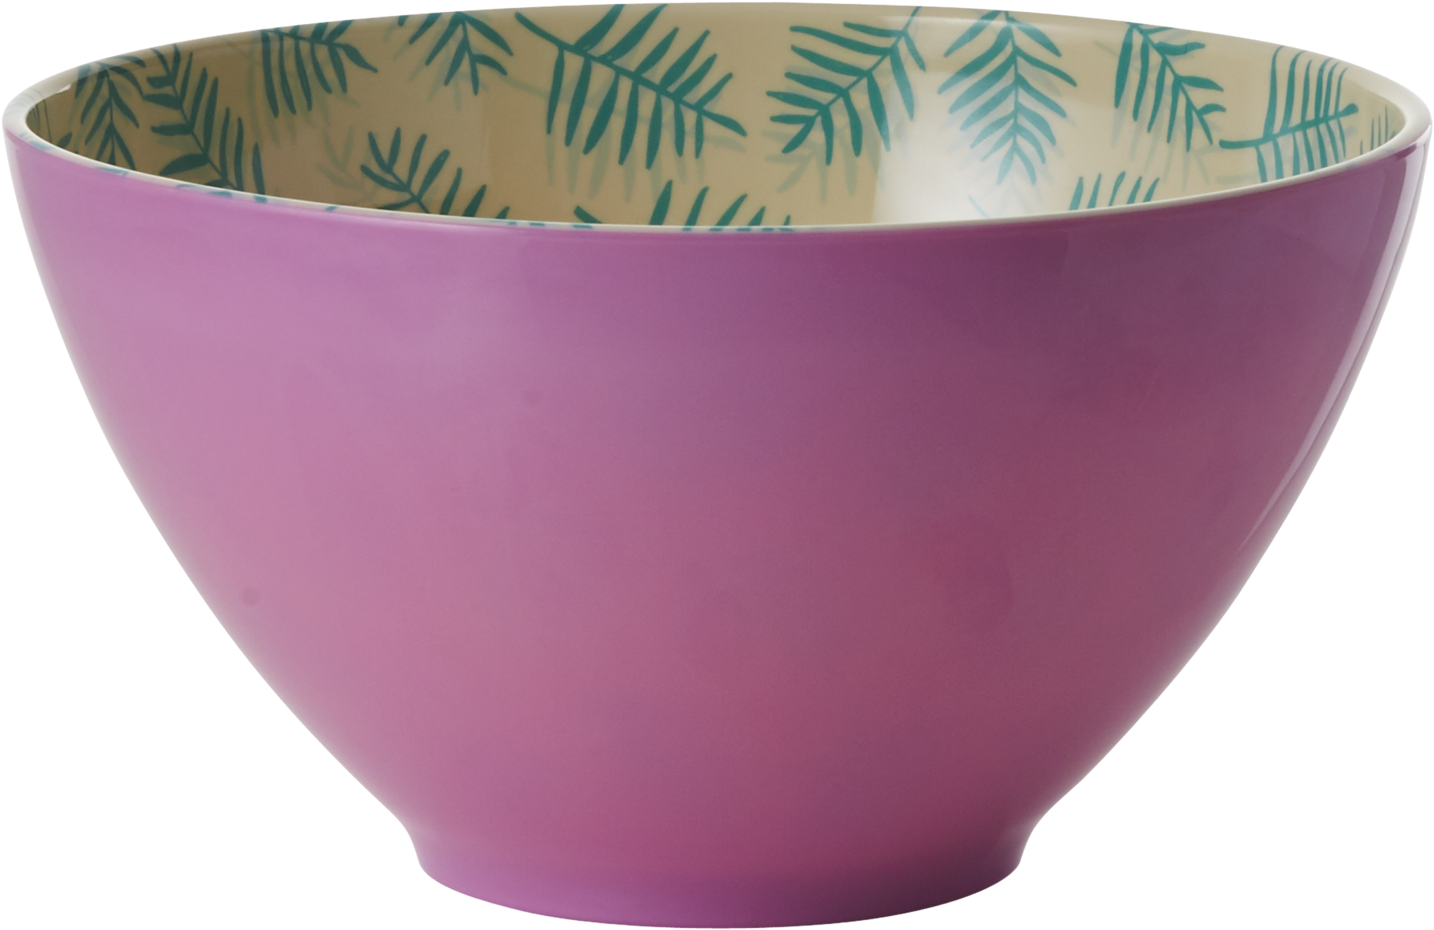 Rice Two Tone Melamine Palm Leaves Salad Bowl (2000x2000), Png Download